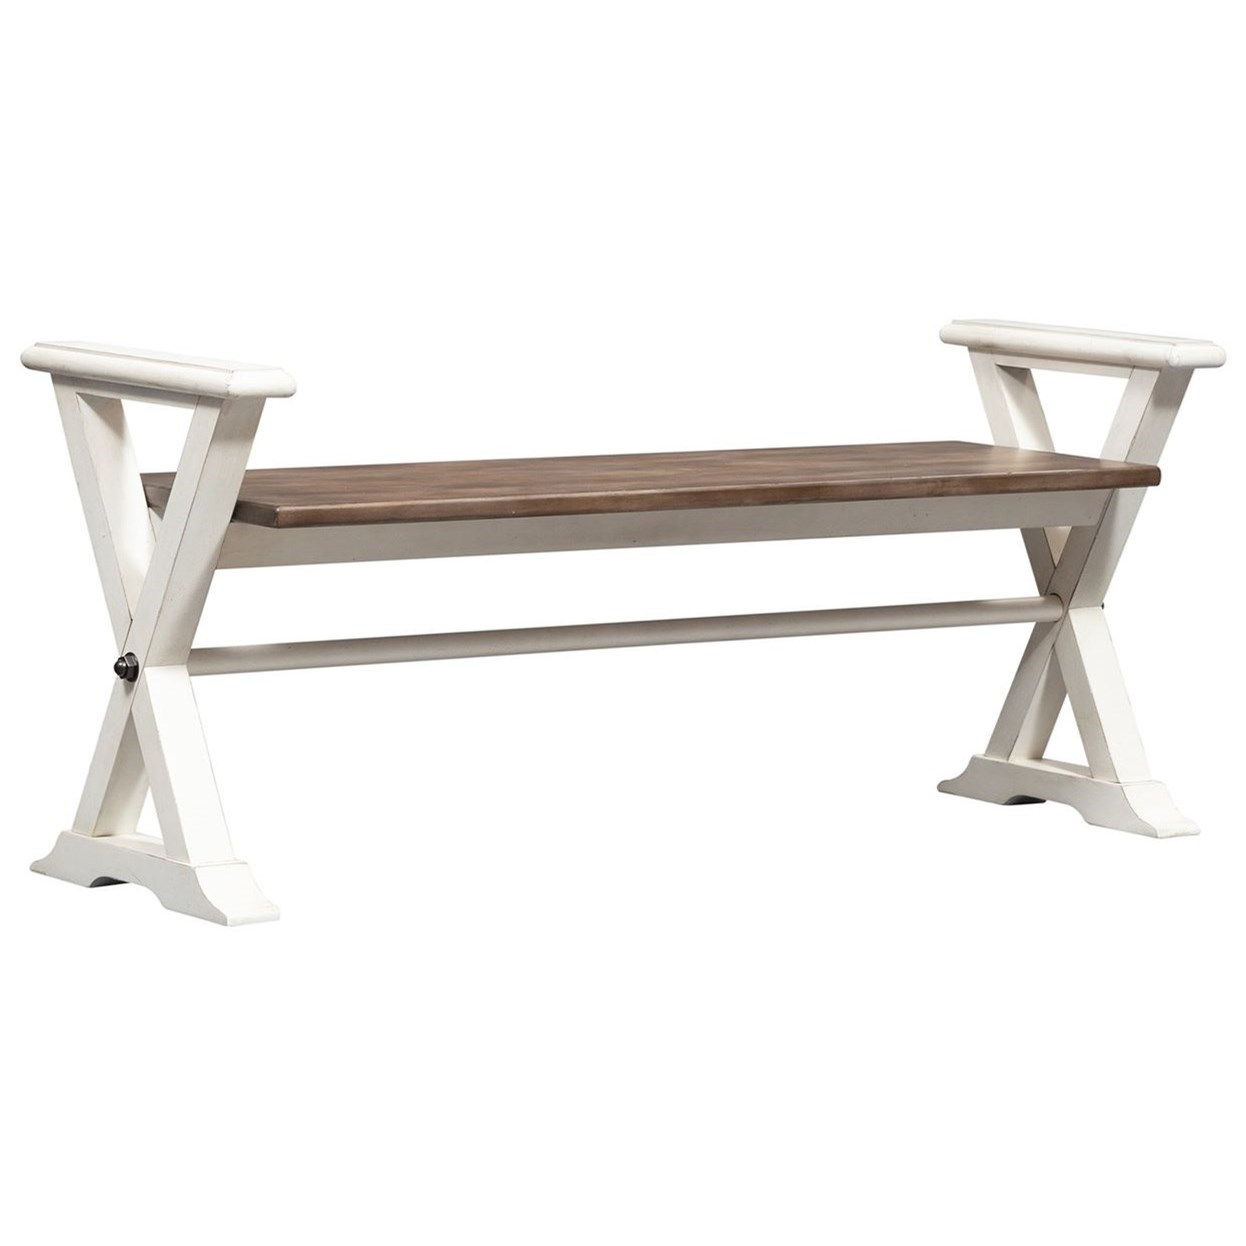 Abbey Road Bed Bench by Liberty Furniture at Home Collections Furniture